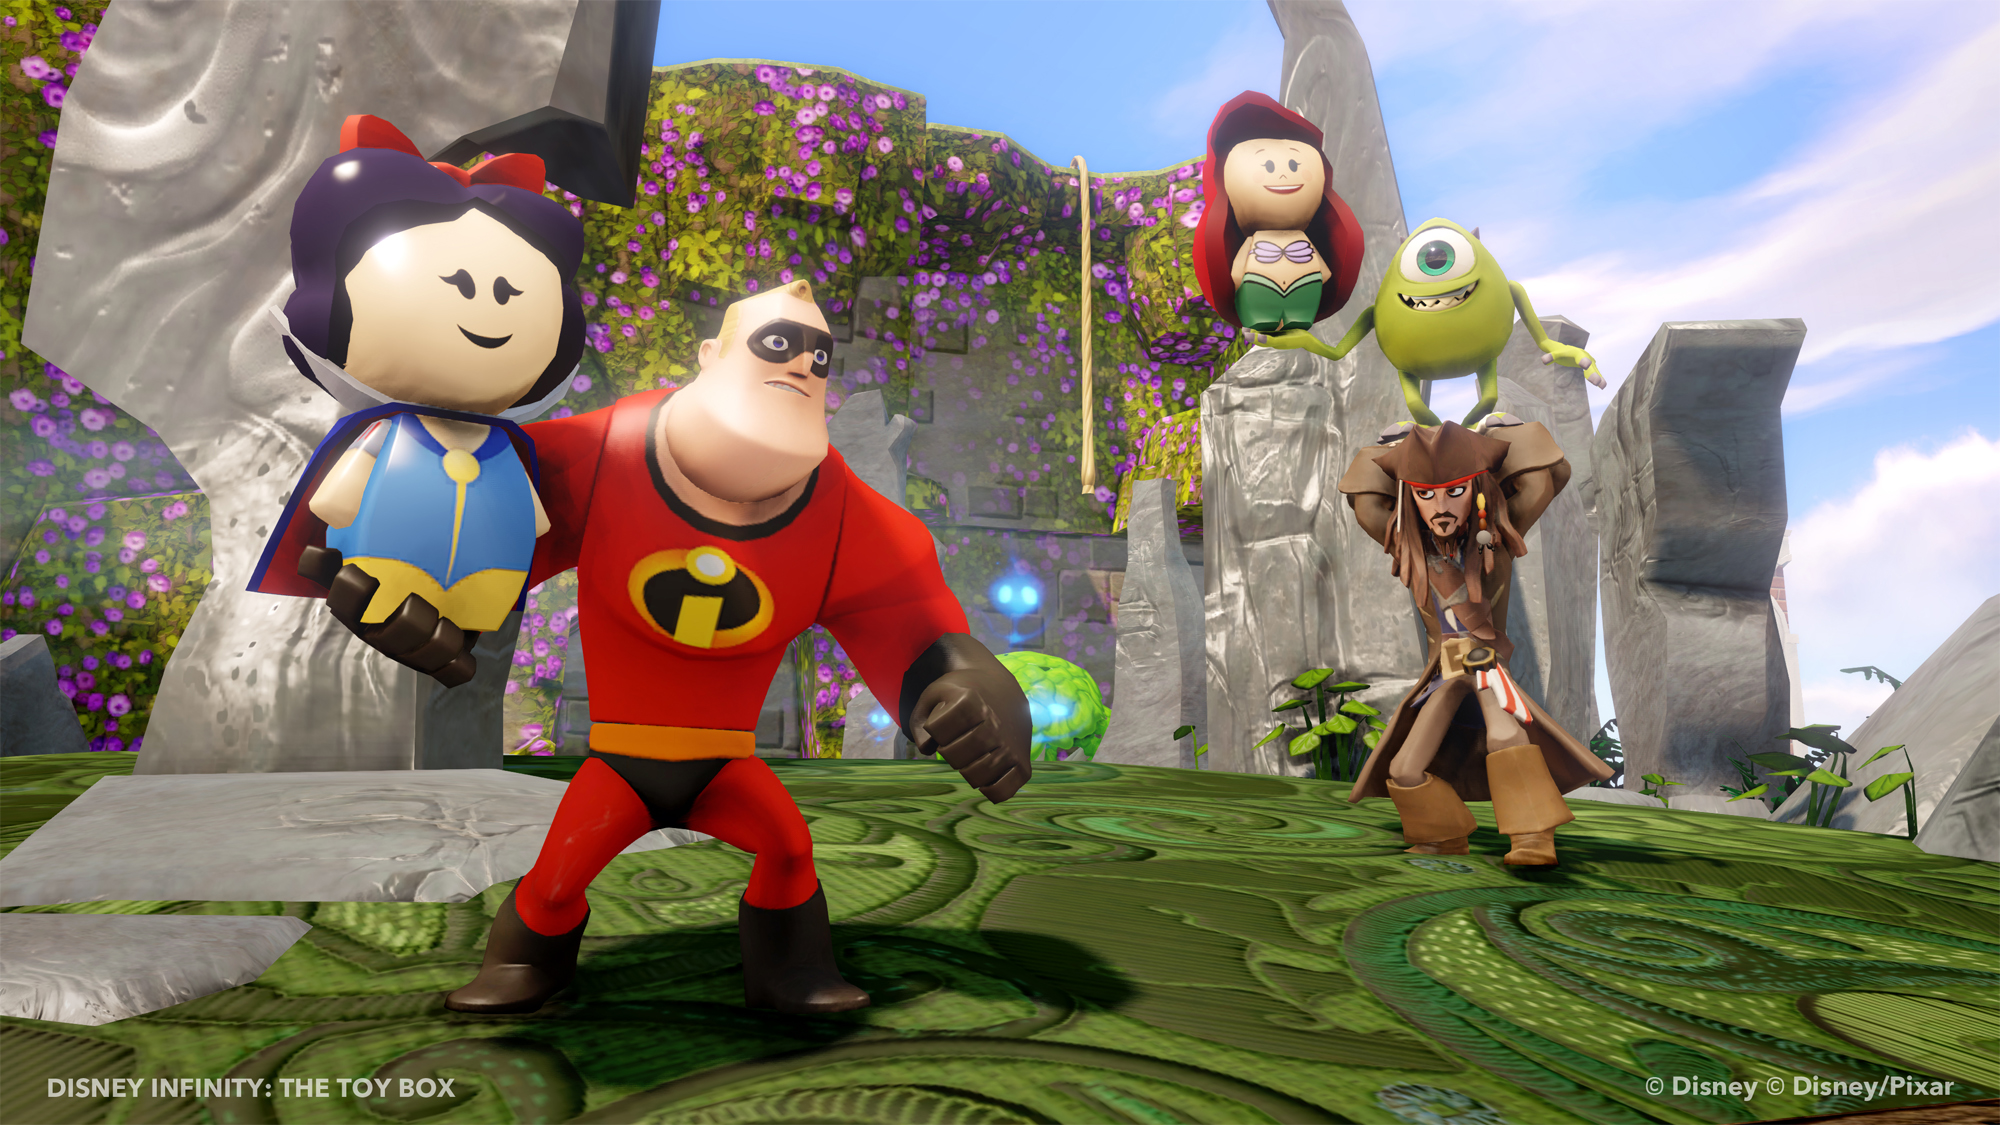 Disney Infinity is now free on Wii U eShop